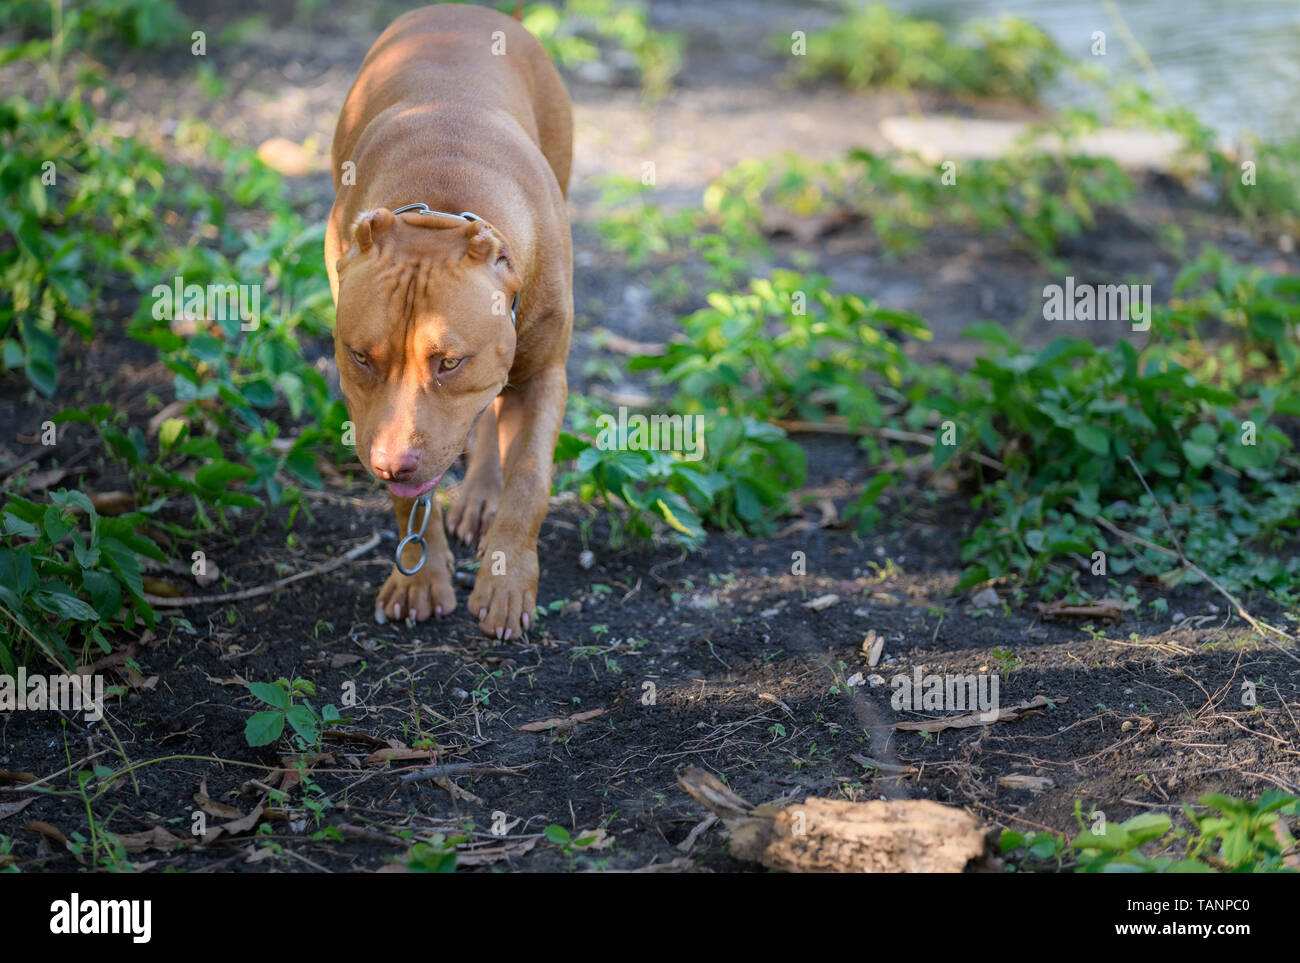 American Pit Bull Terrier dog walking around house,Pet and dangerous dog concept - Stock Image